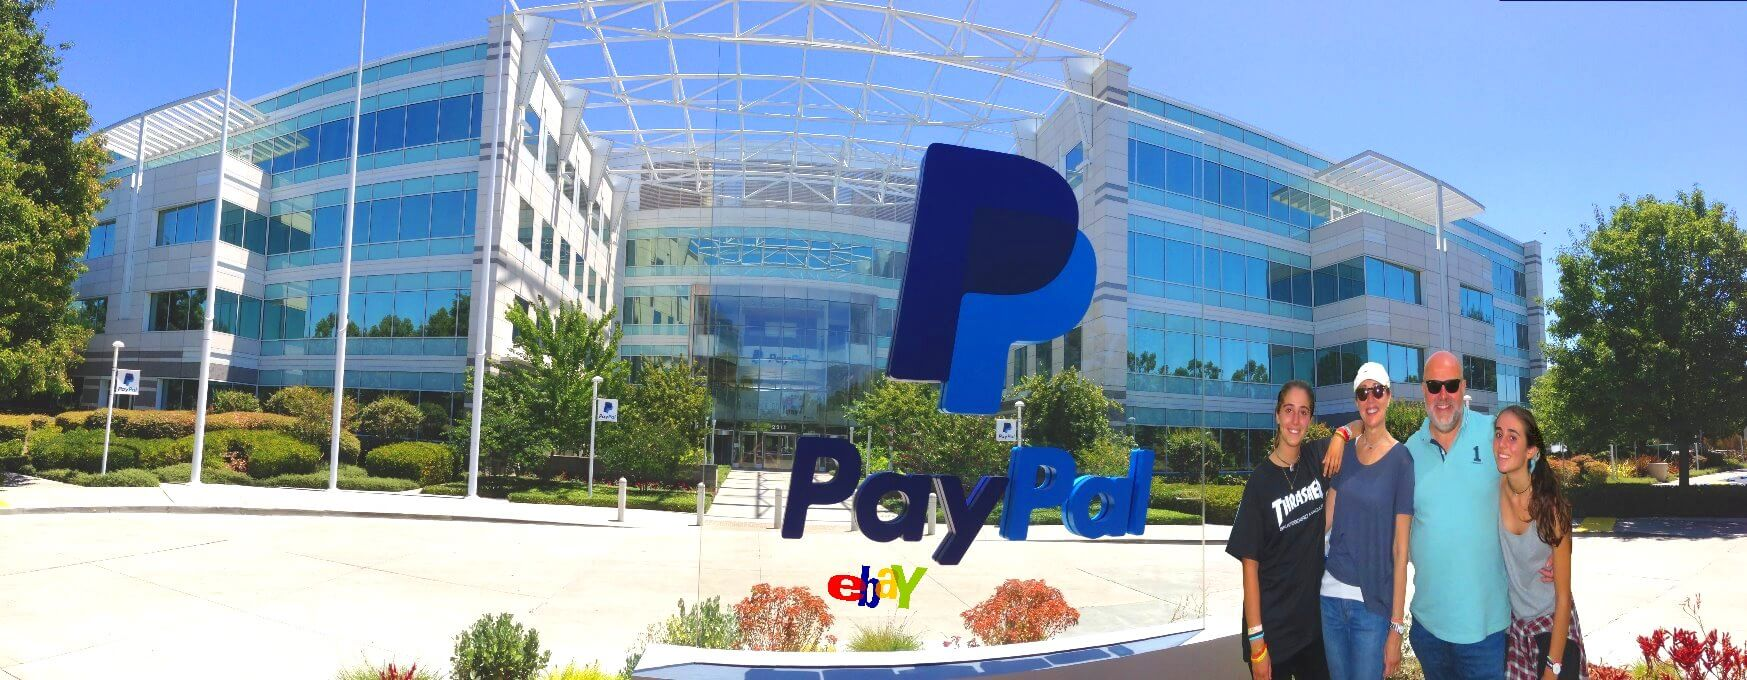 PayPal-Headquarte-in-San-Jose-Silicon-Valley-Sightseeing